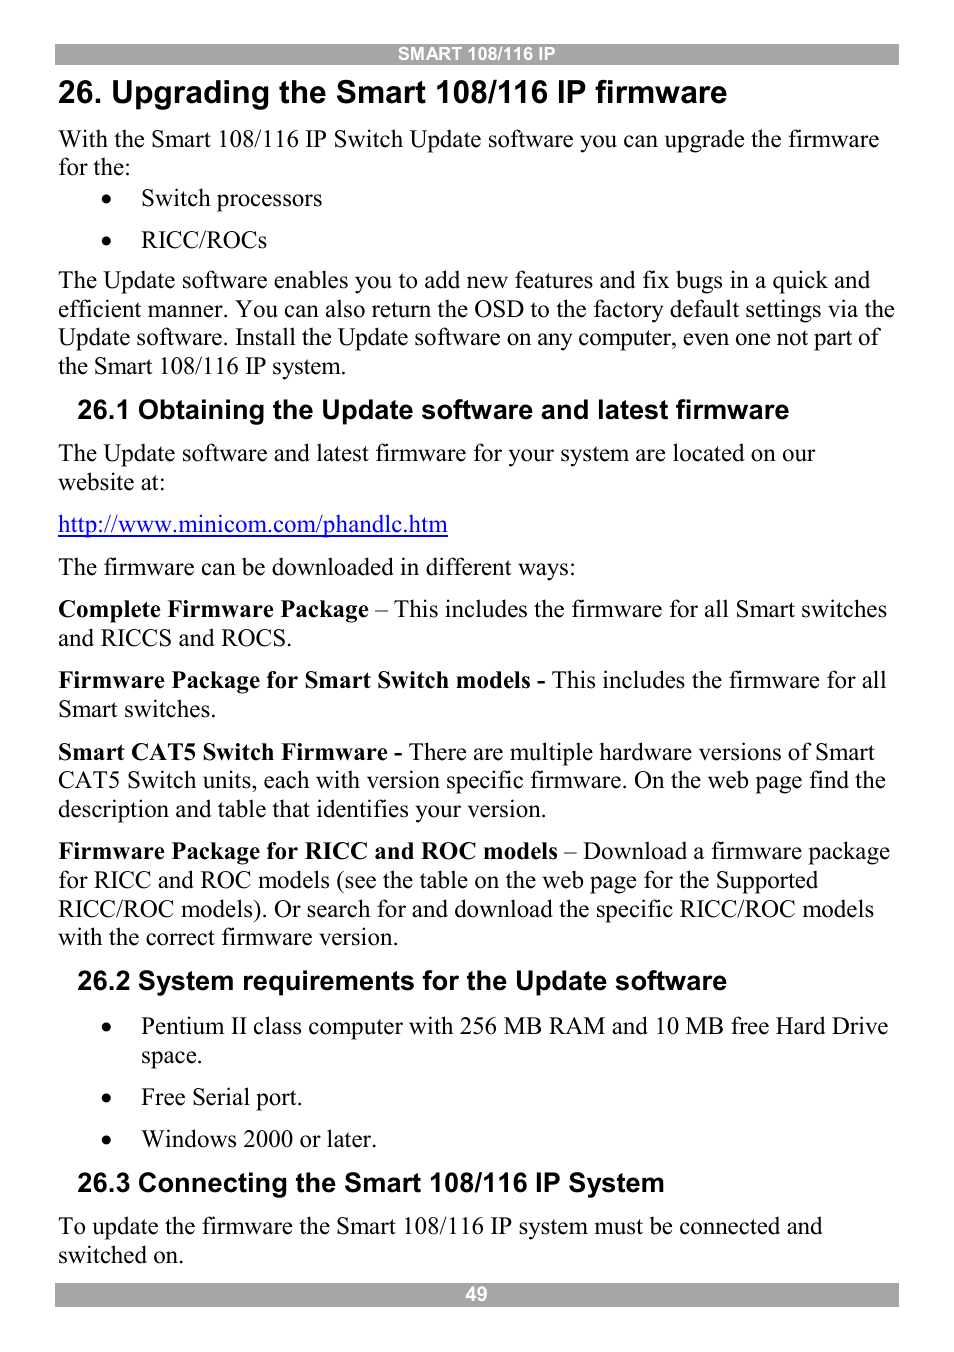 Upgrading the smart 108/116 ip firmware, 2 system requirements for